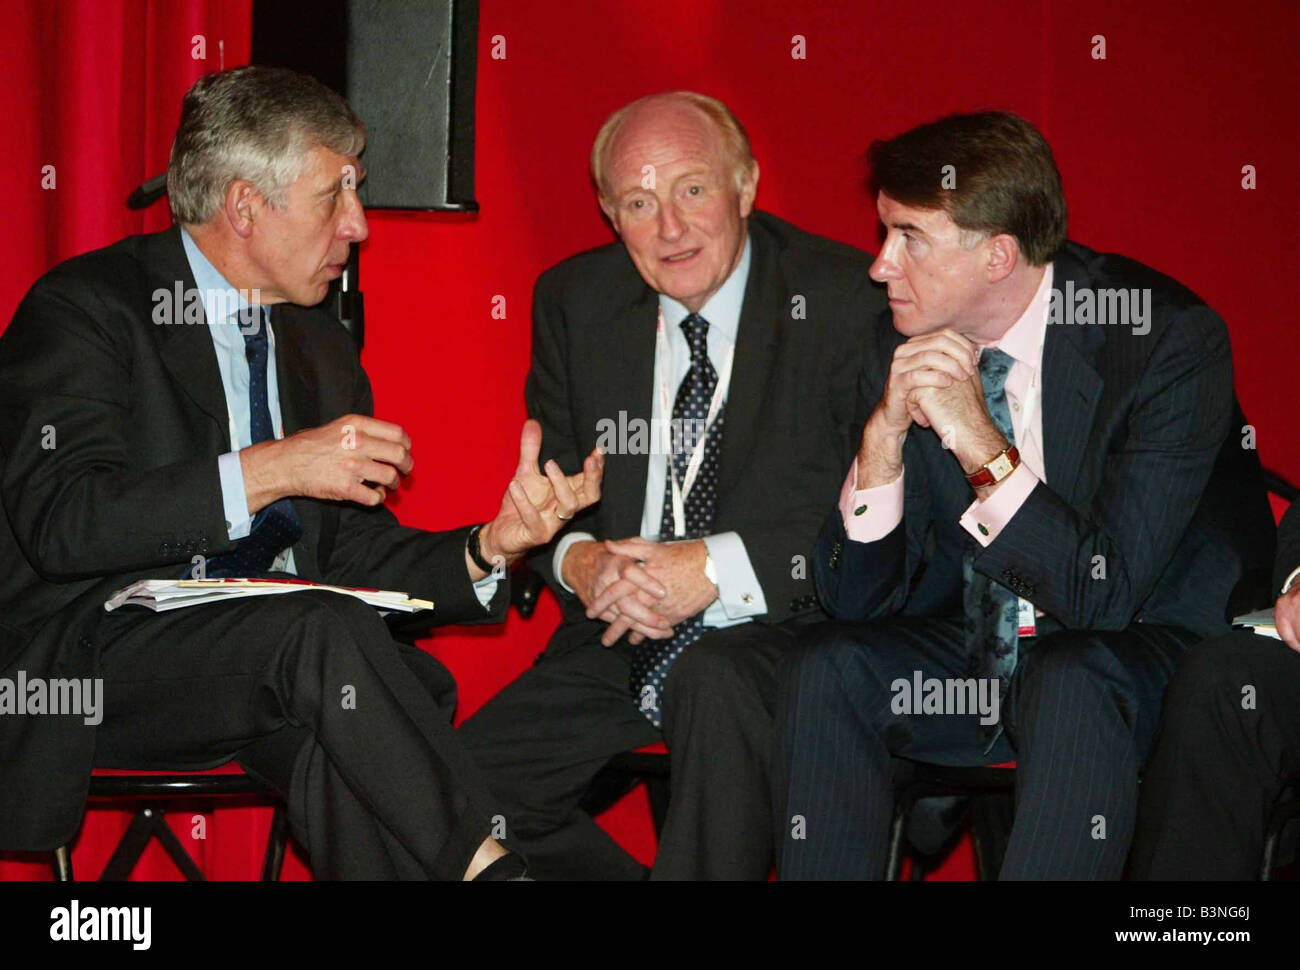 Labour Conference Jack Straw Peter Mandelson and Neil Kinnock September 2004 - Stock Image